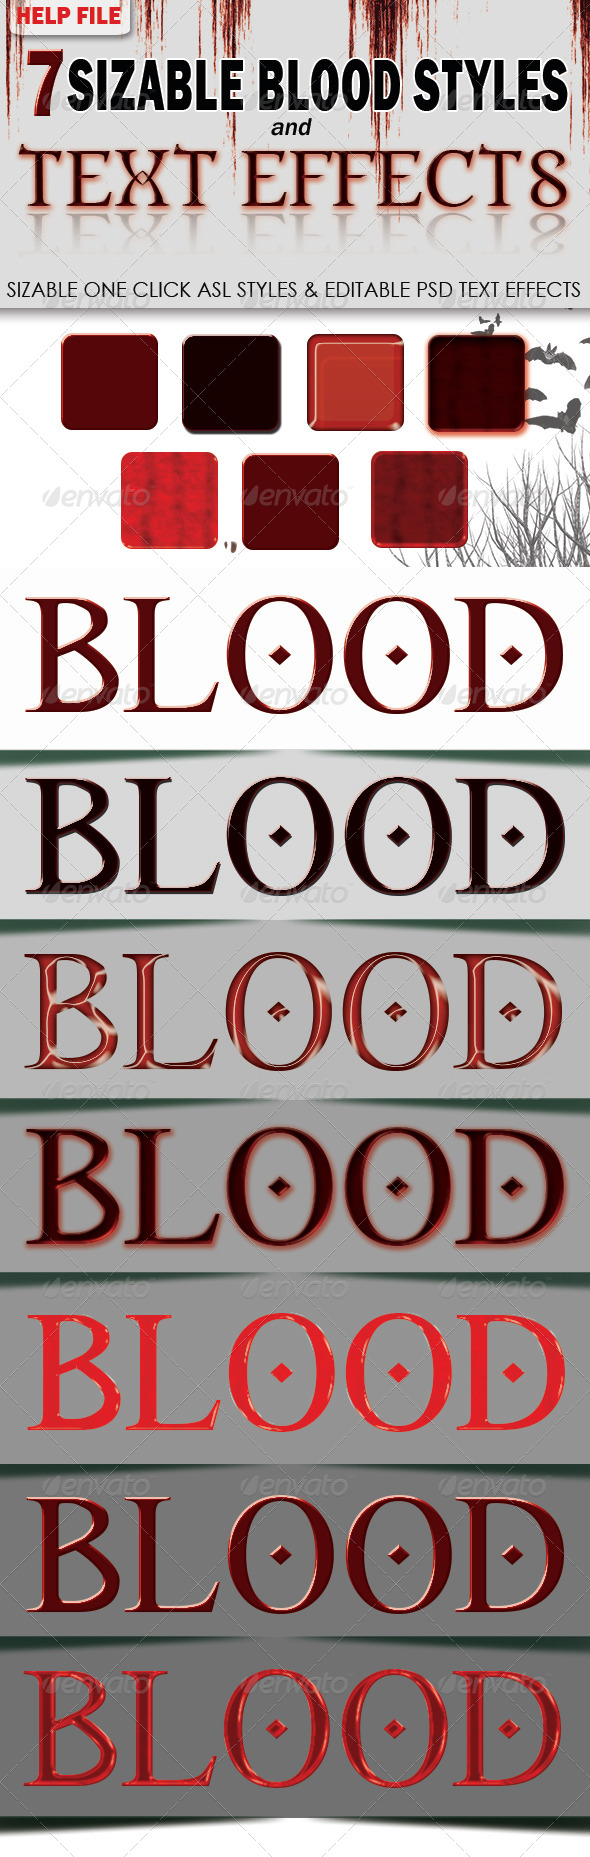 GraphicRiver 7 Sizable Blood Styles & PSD Text Effects 5888915